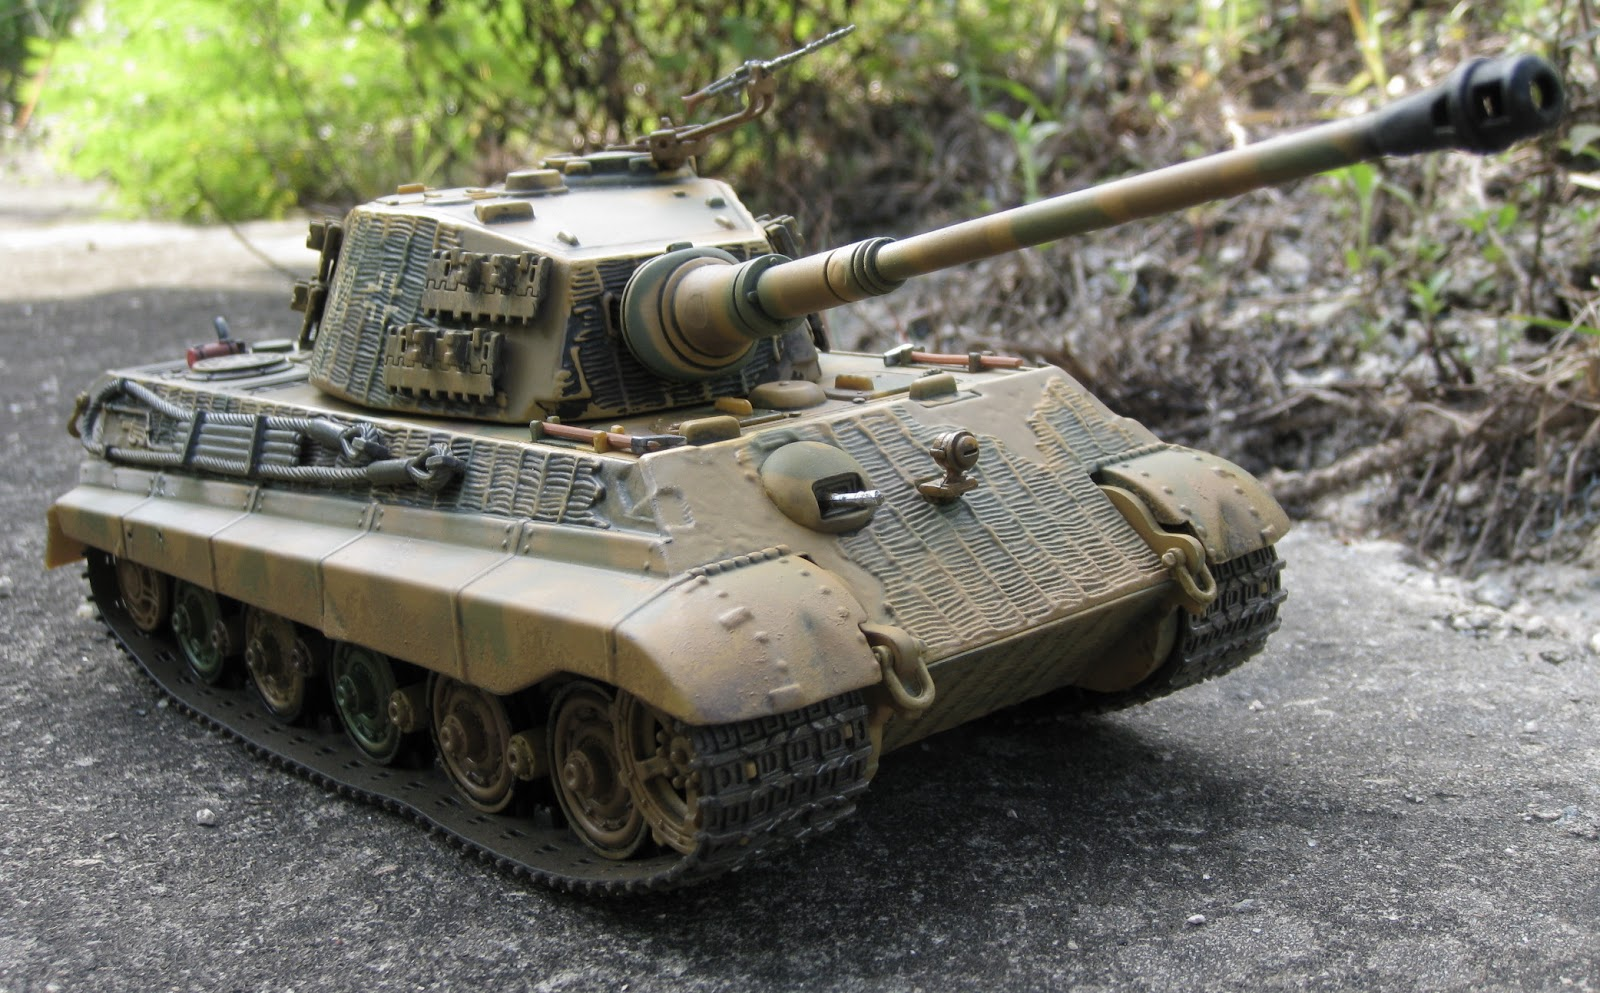 D-Day 70th Anniversary: King Tiger heavy tank awaits the